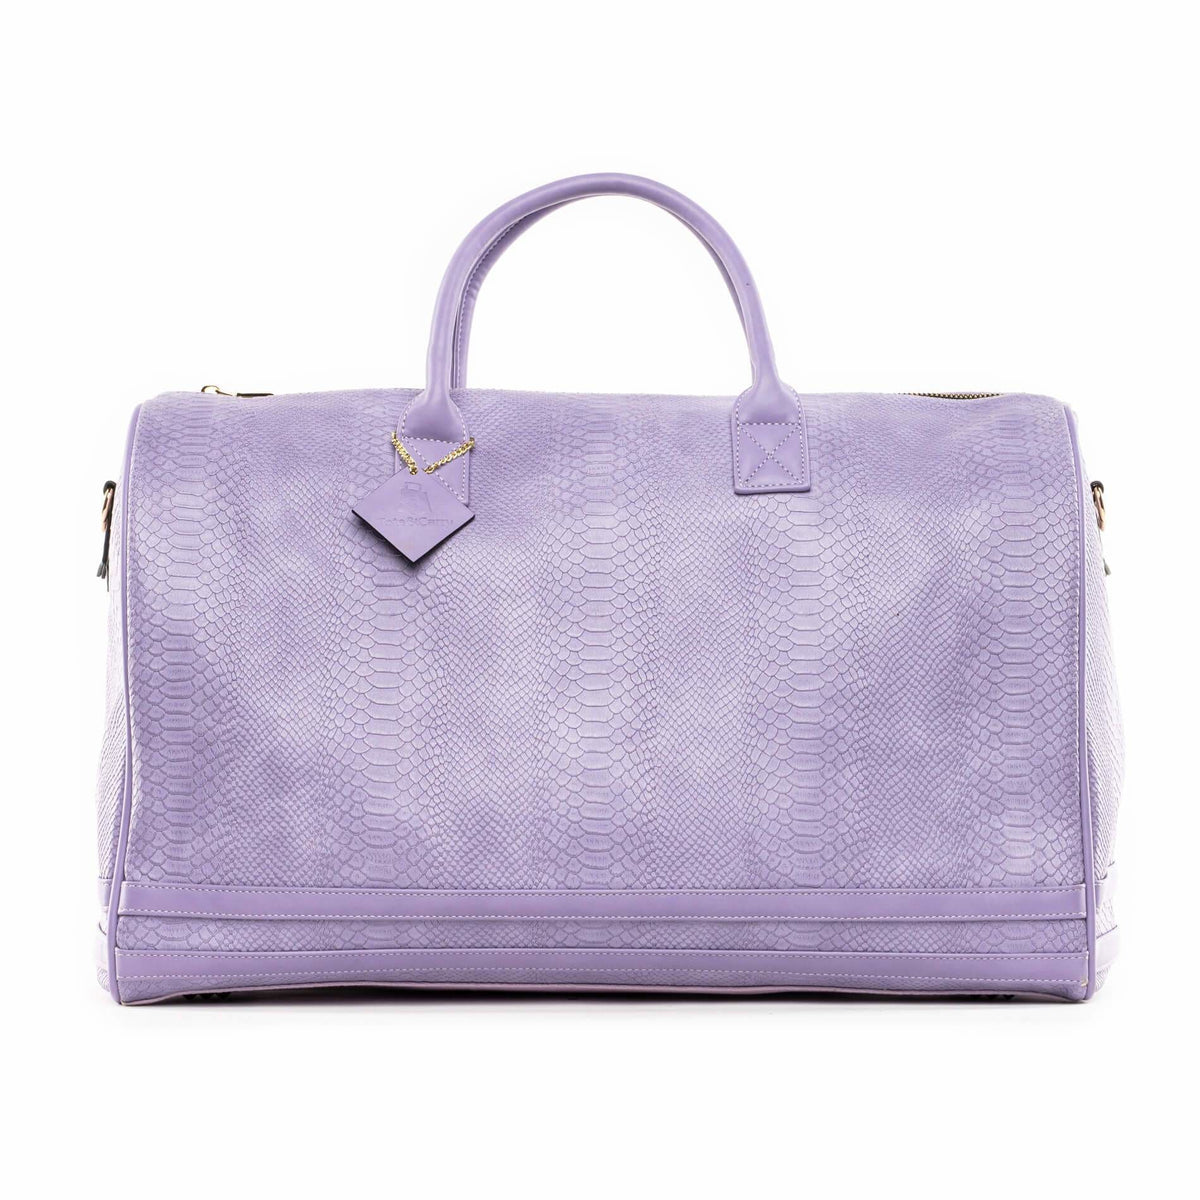 Lavender Apollo Duffle - XL - Travel Bag Tote&Carry